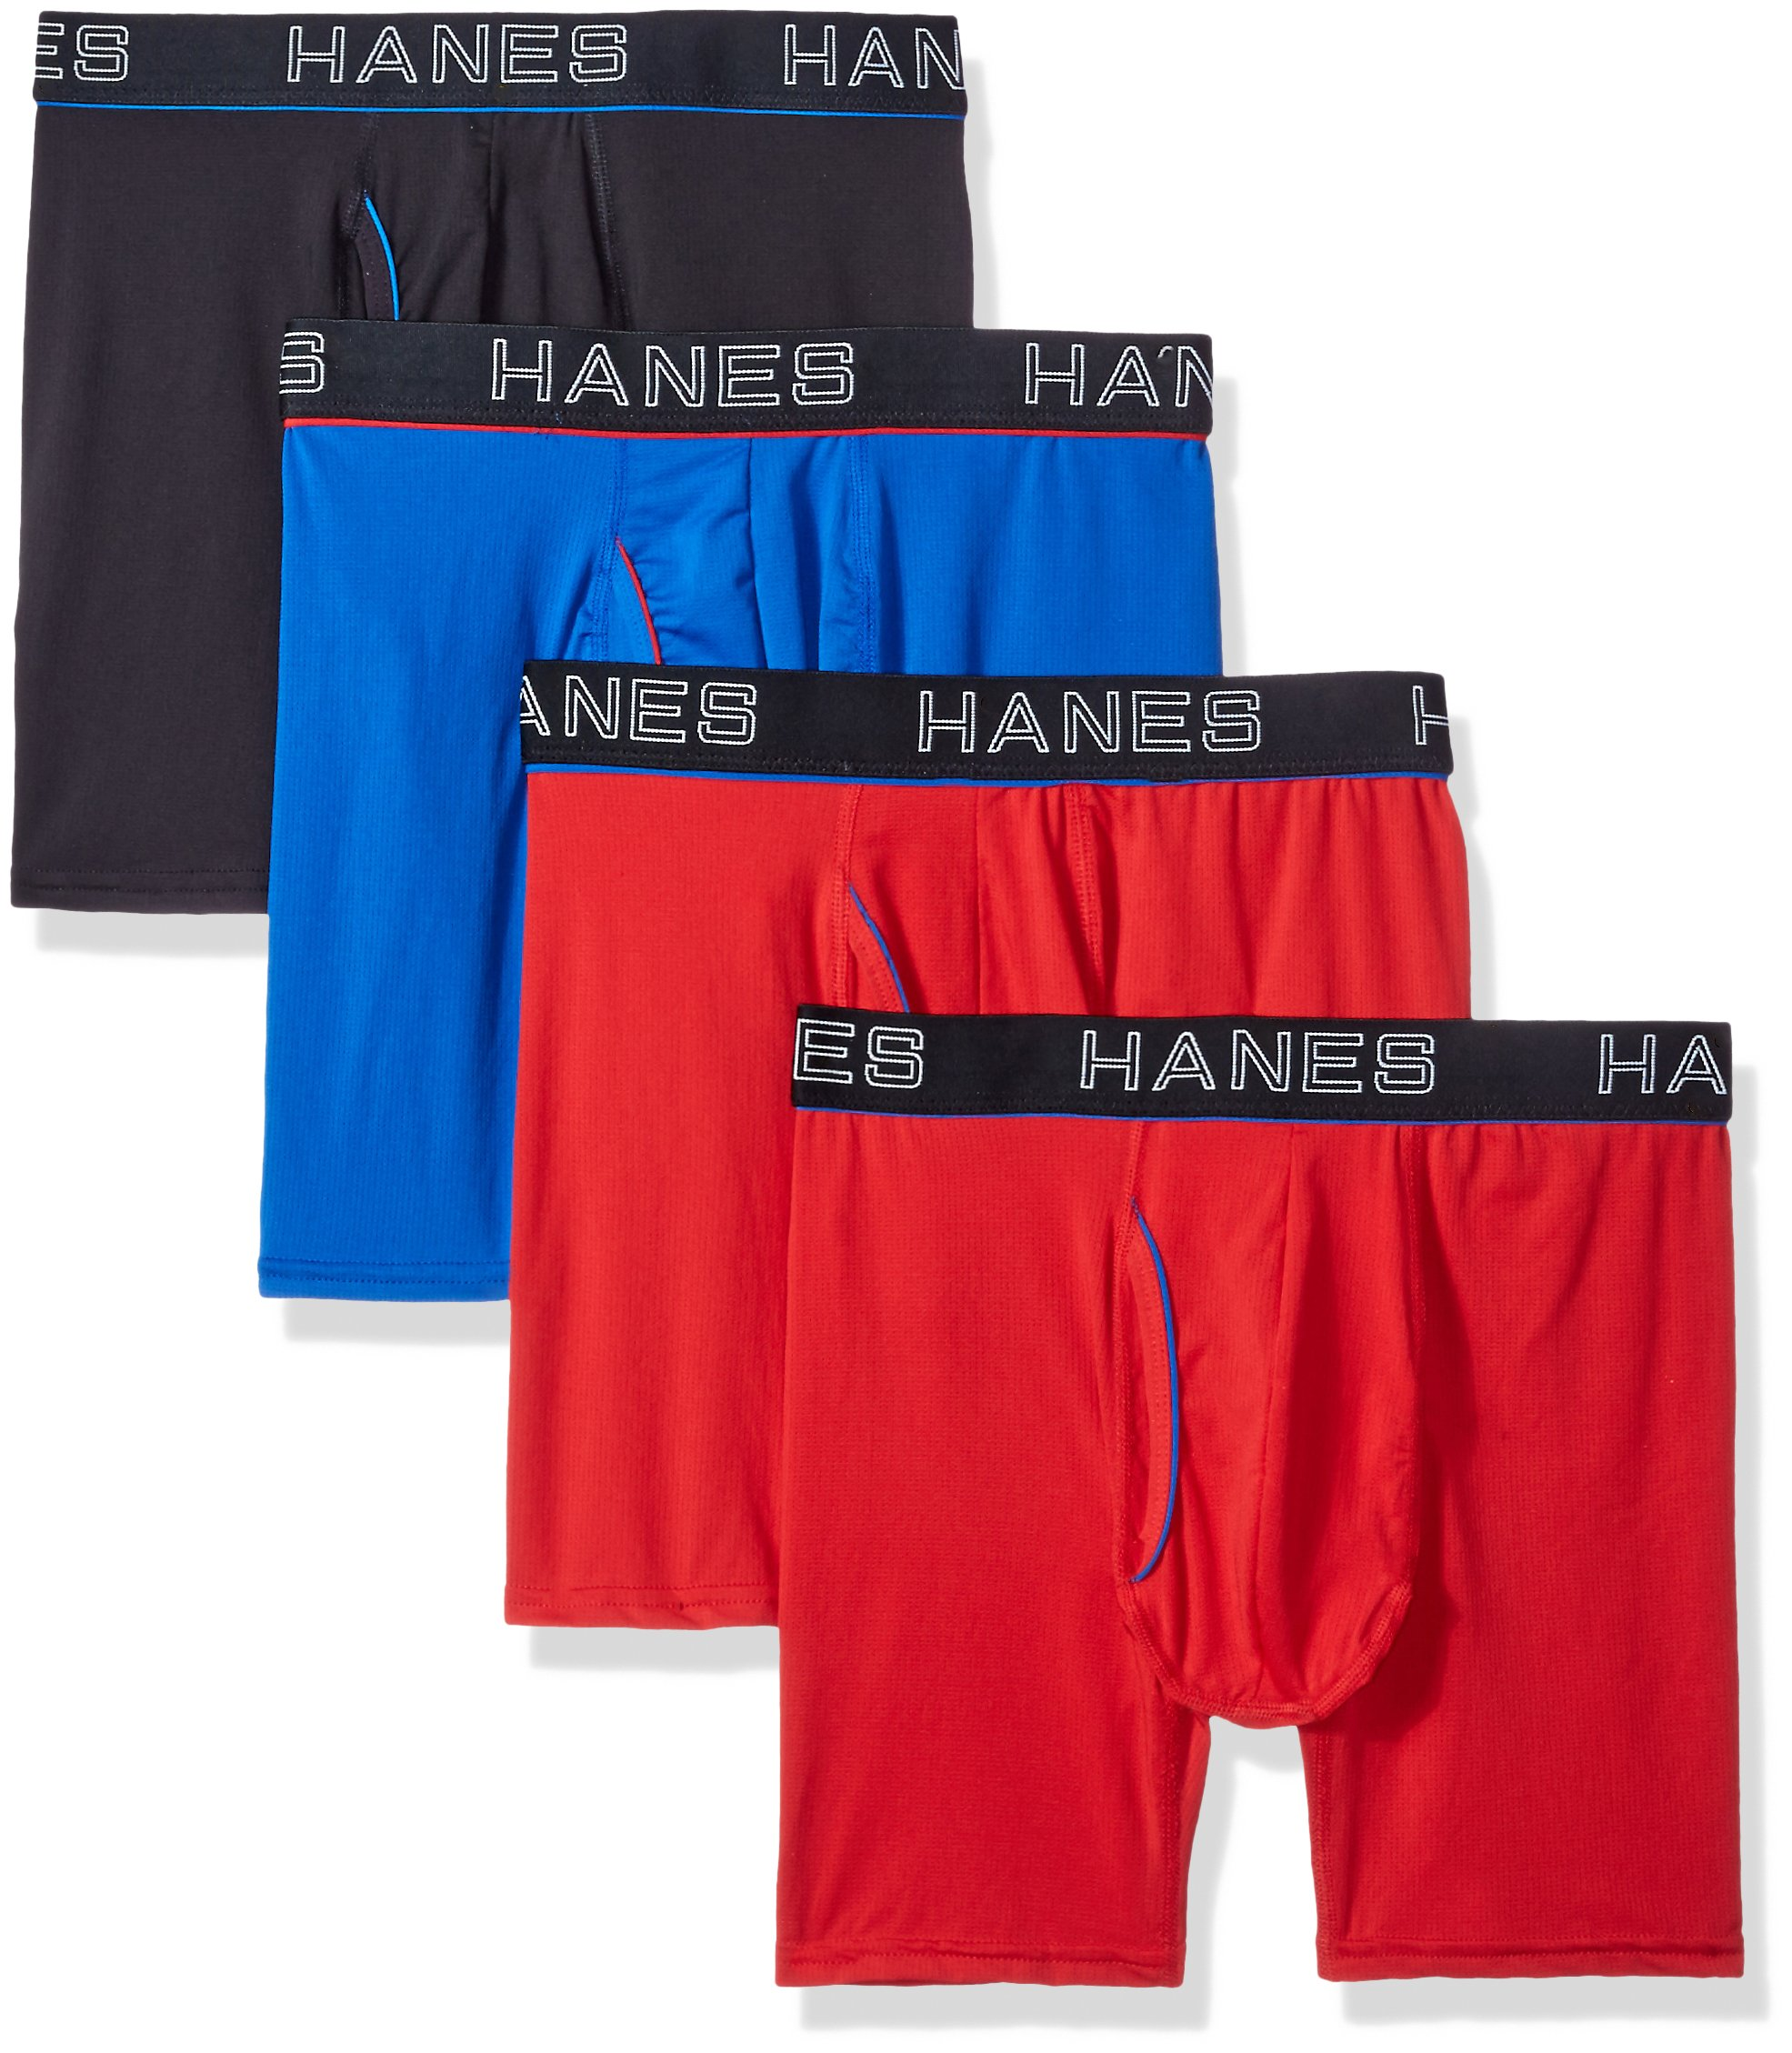 Hanes Ultimate Men's Comfort Flex Fit Ultra Lightweight Mesh Boxer Brief 4-Pack